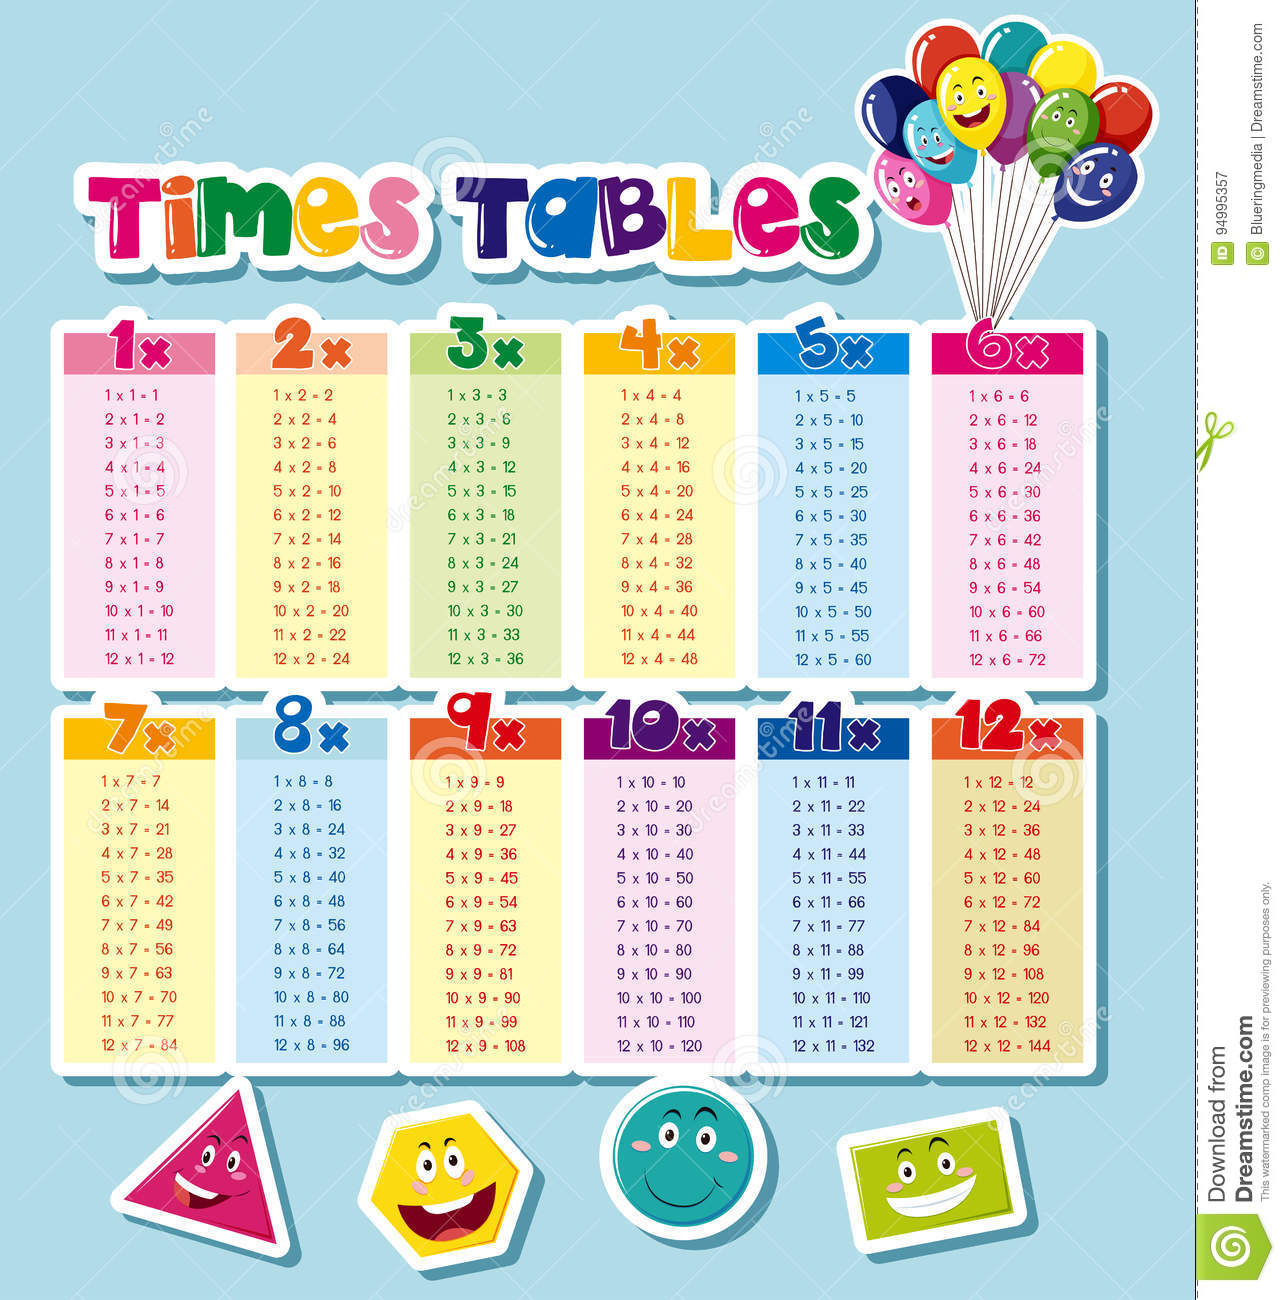 Times Tables Design With Blue Background Stock Vector